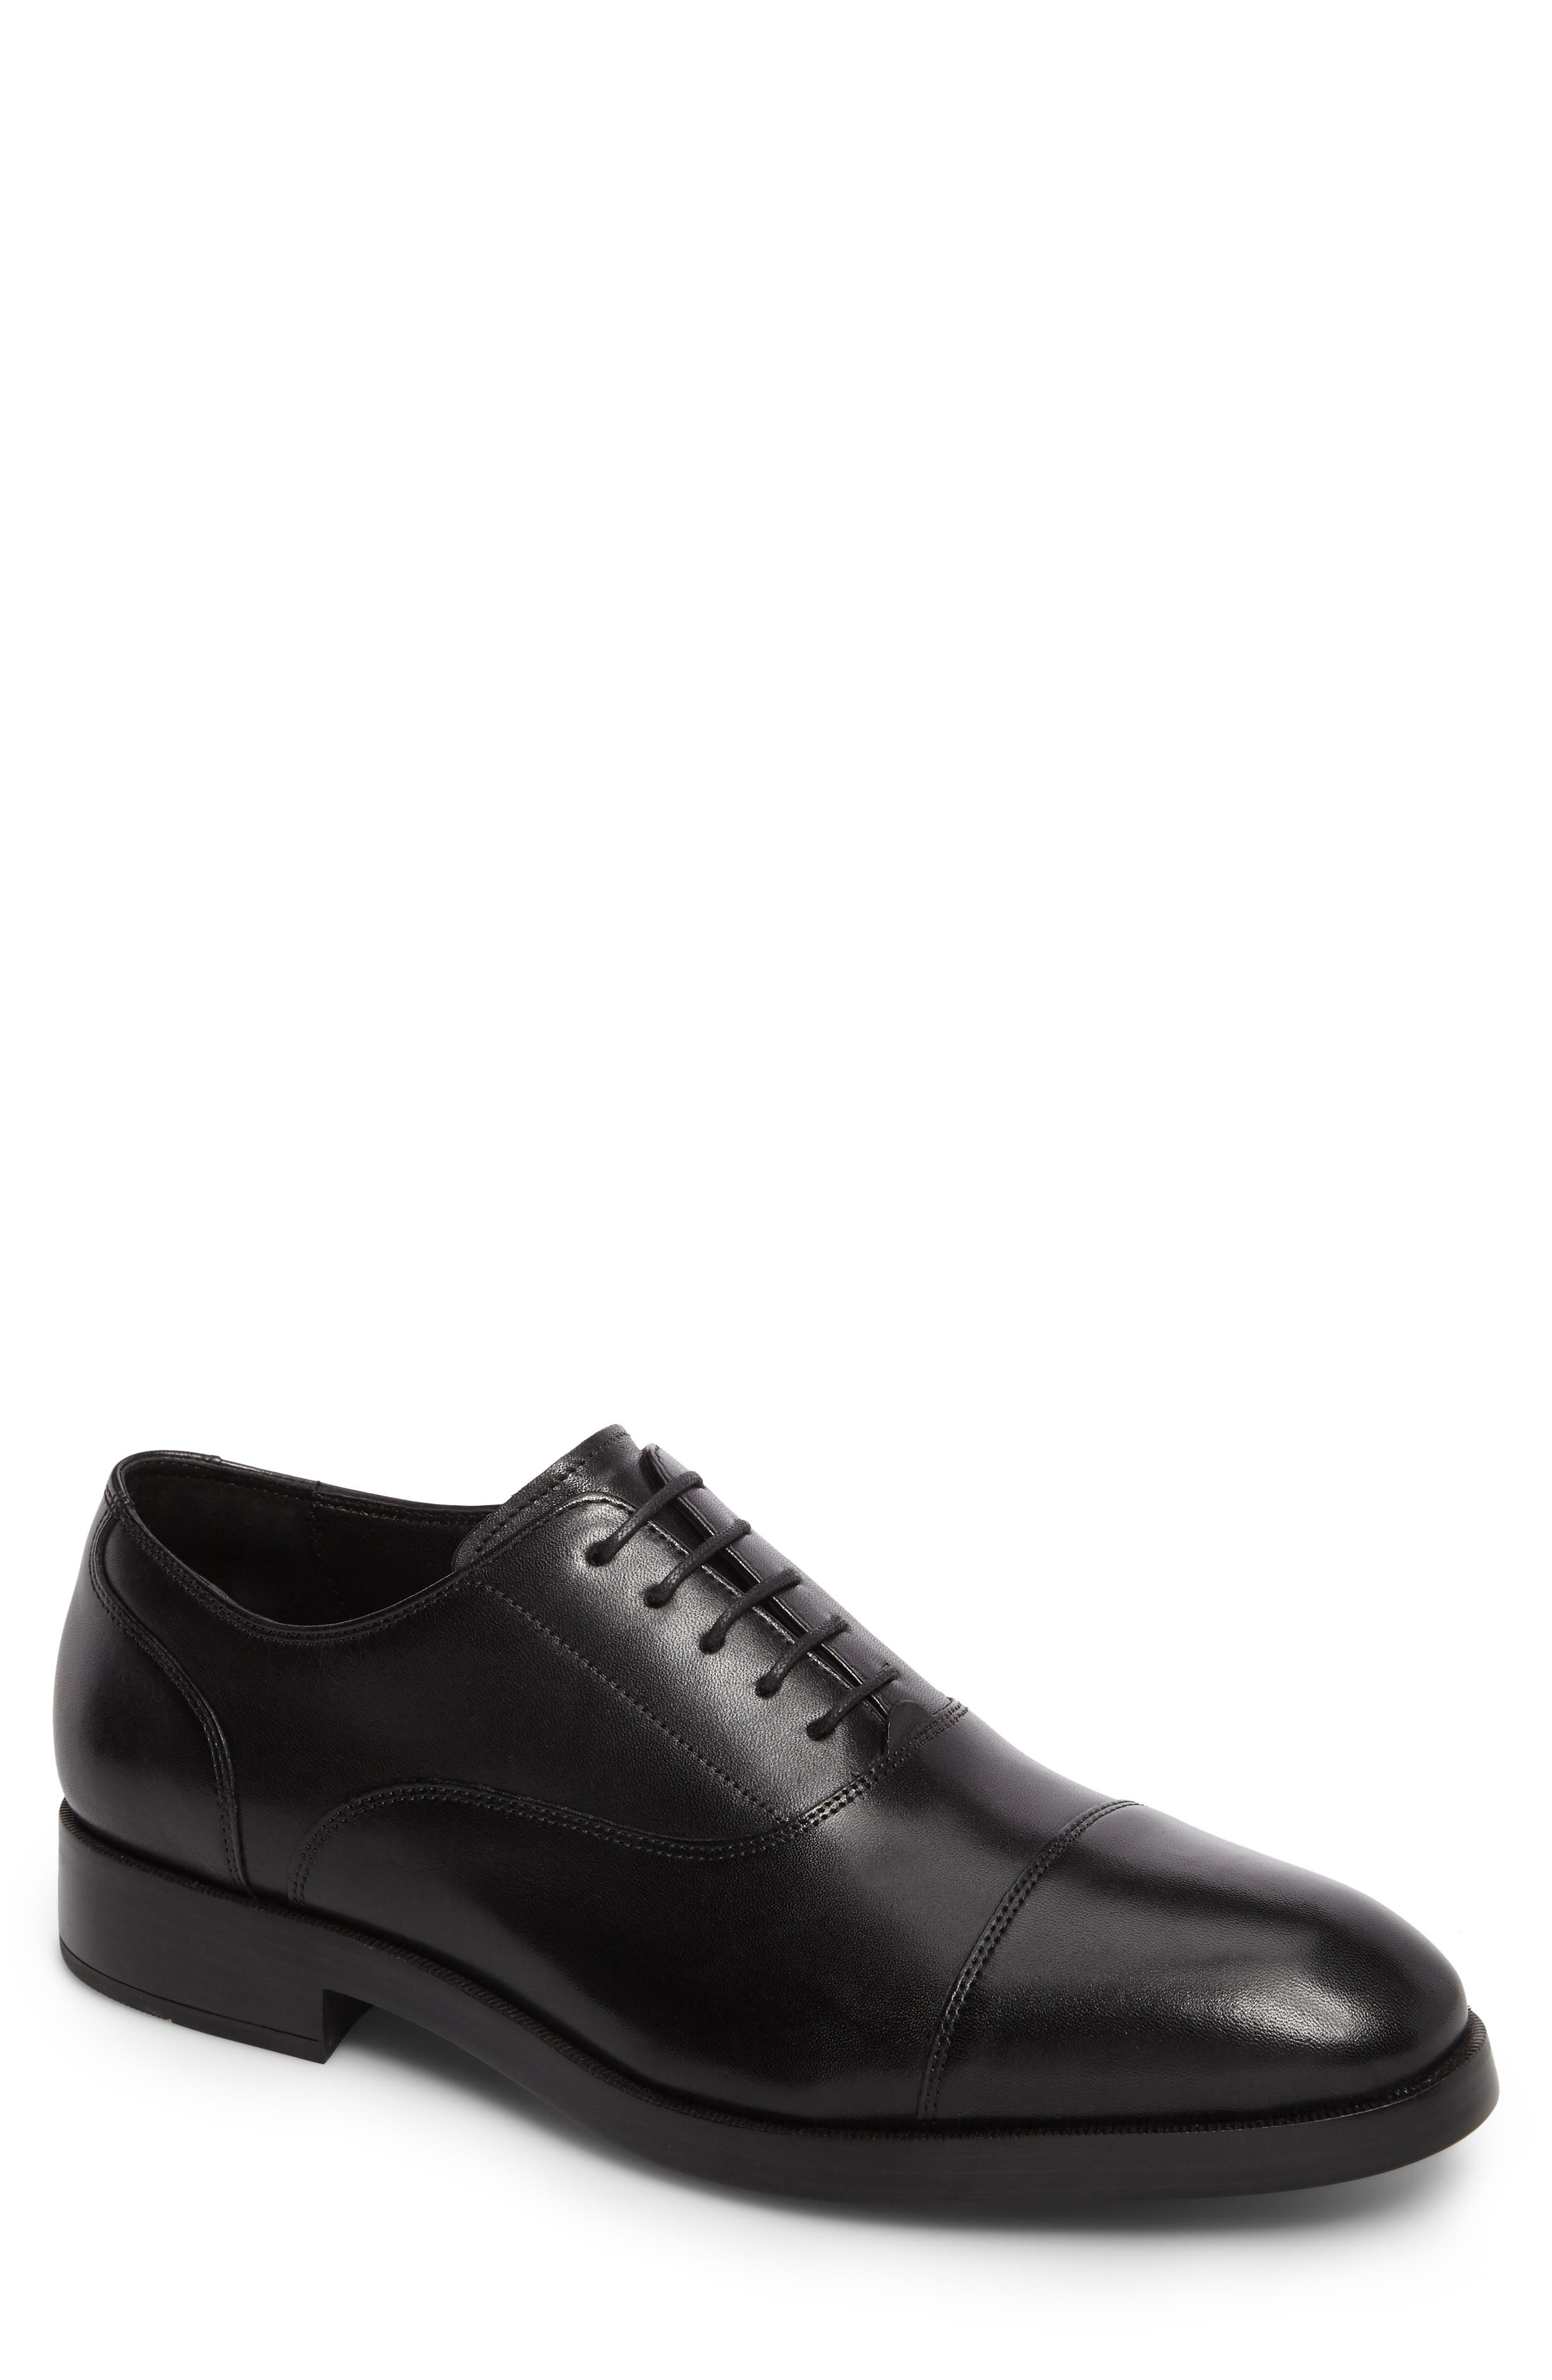 COLE HAAN Harrison Grand Cap Toe Oxford, Main, color, BLACK/ BLACK LEATHER